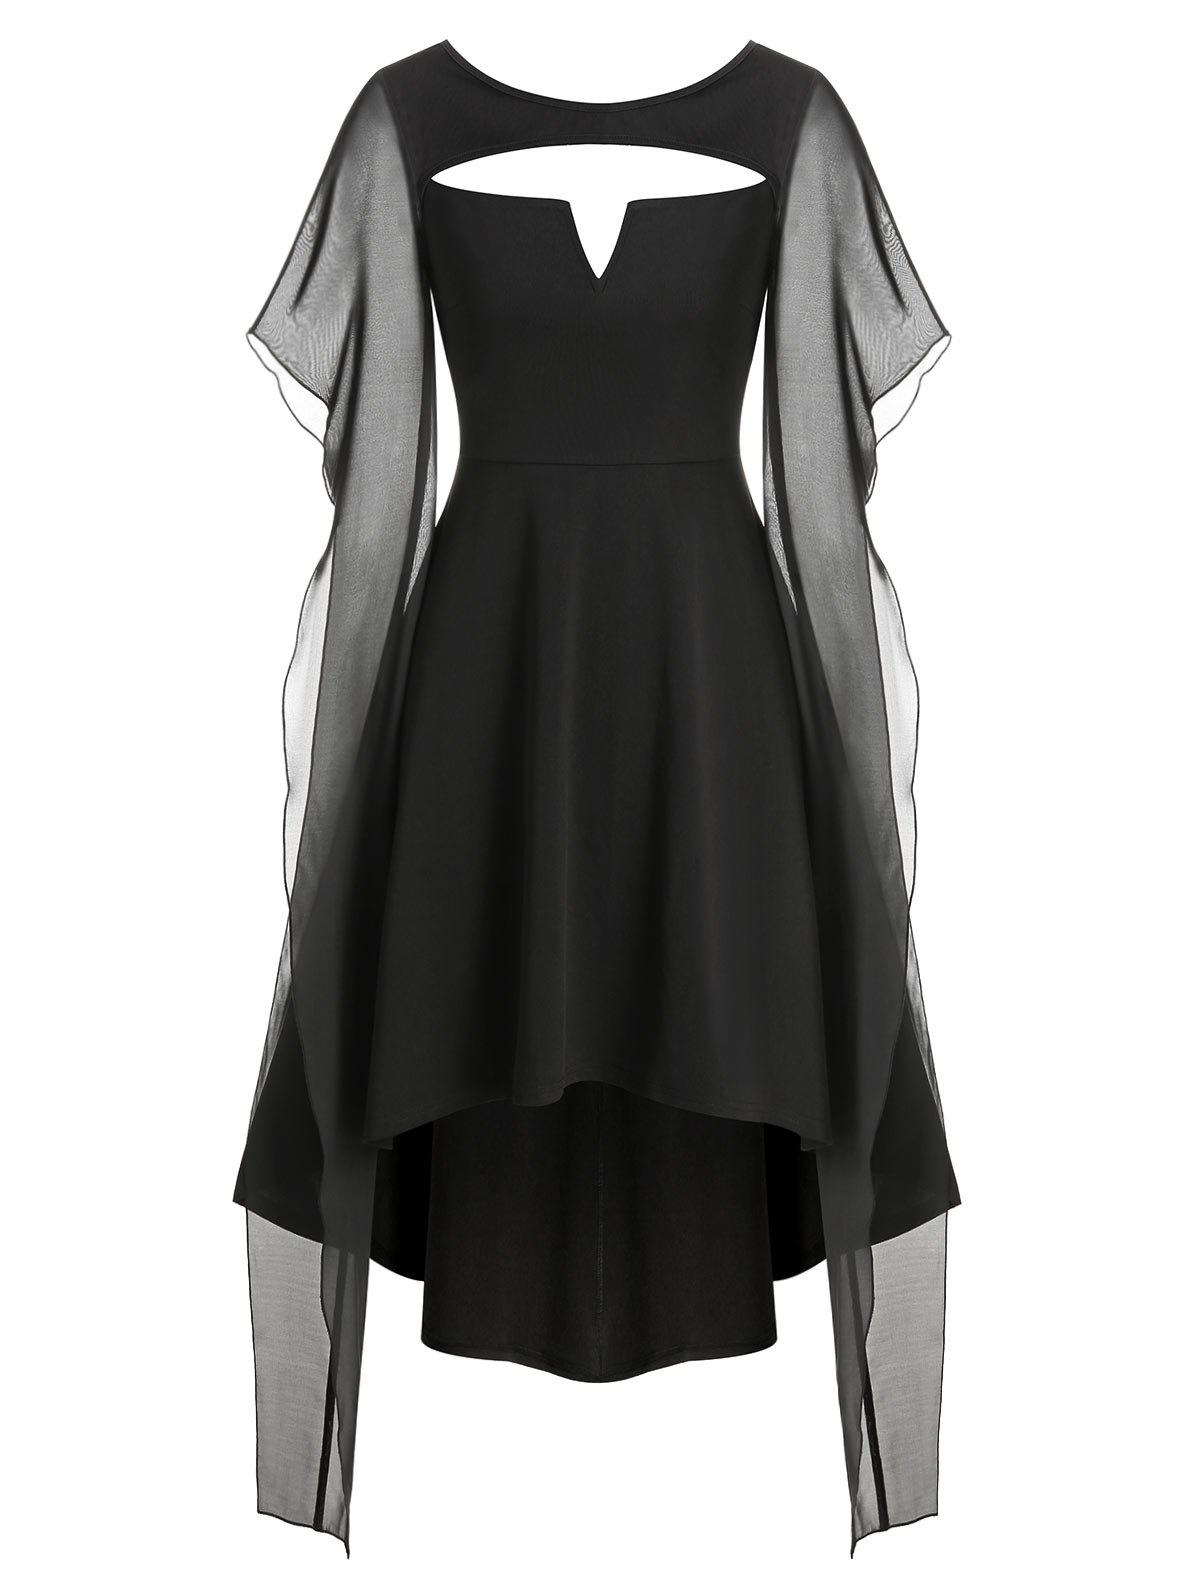 Cut Out V-notched High Low Gothic Dress - BLACK M